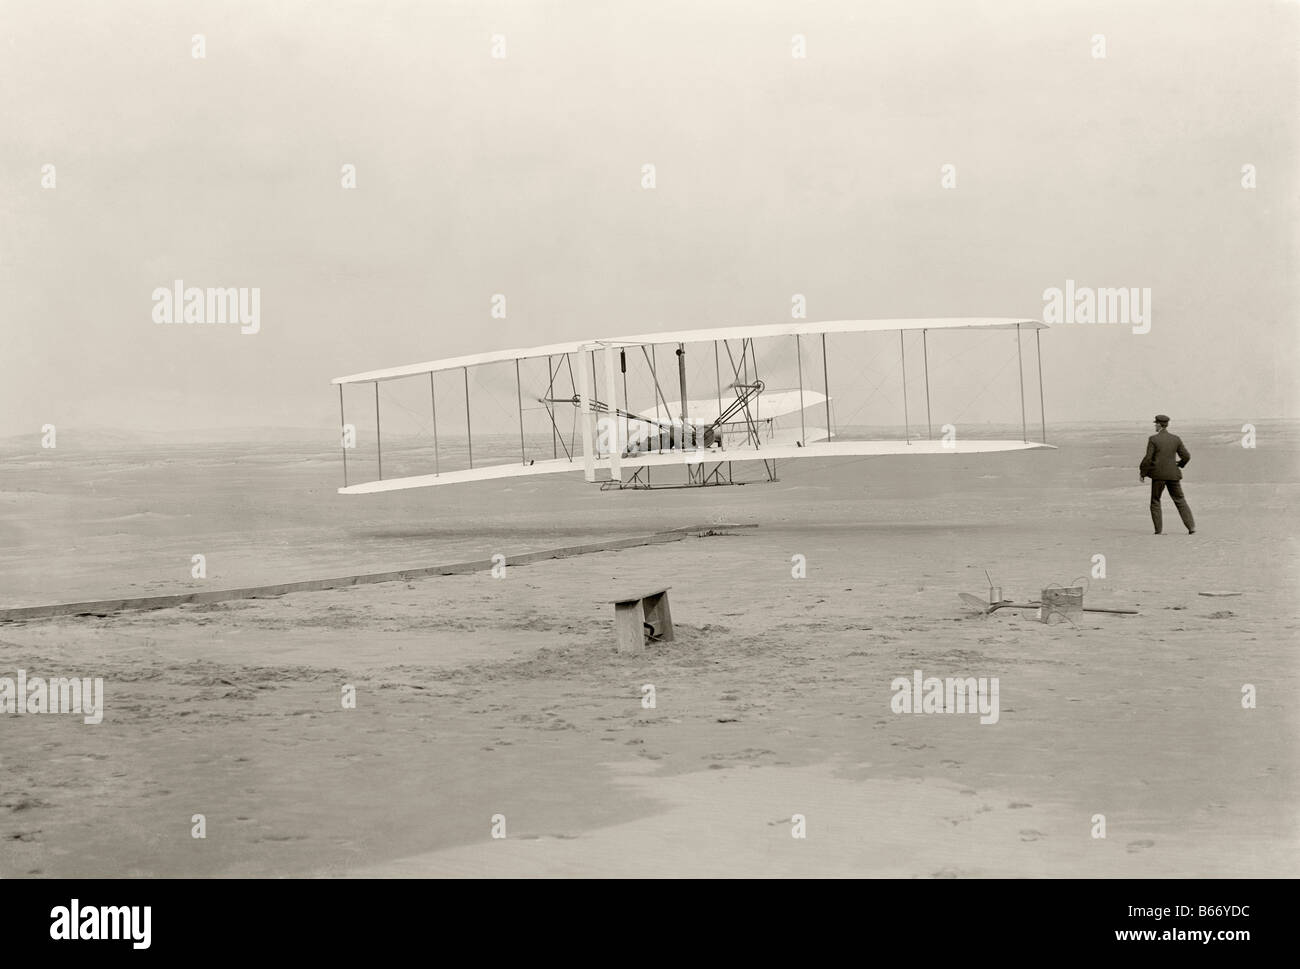 Wright Brothers make first powered flight in 1903 at Kitty Hawk, North Carolina, United States of America - Stock Image